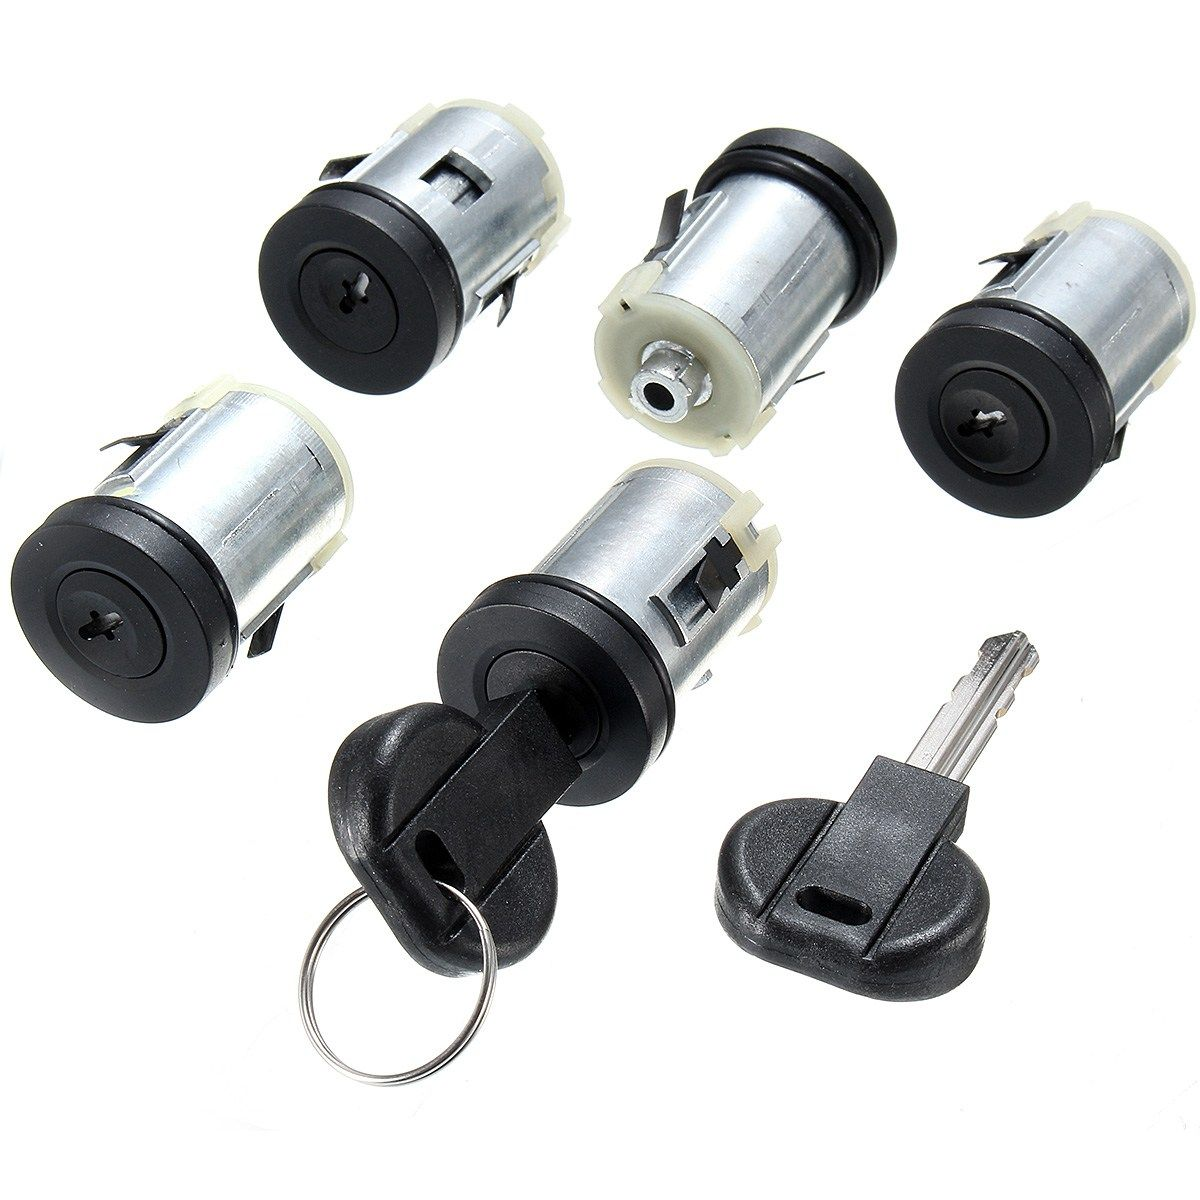 5 X Barrel Car Door Lock Set With 2 Keys For Peugeot Expert 806 For Citroen Synergie Dispatch